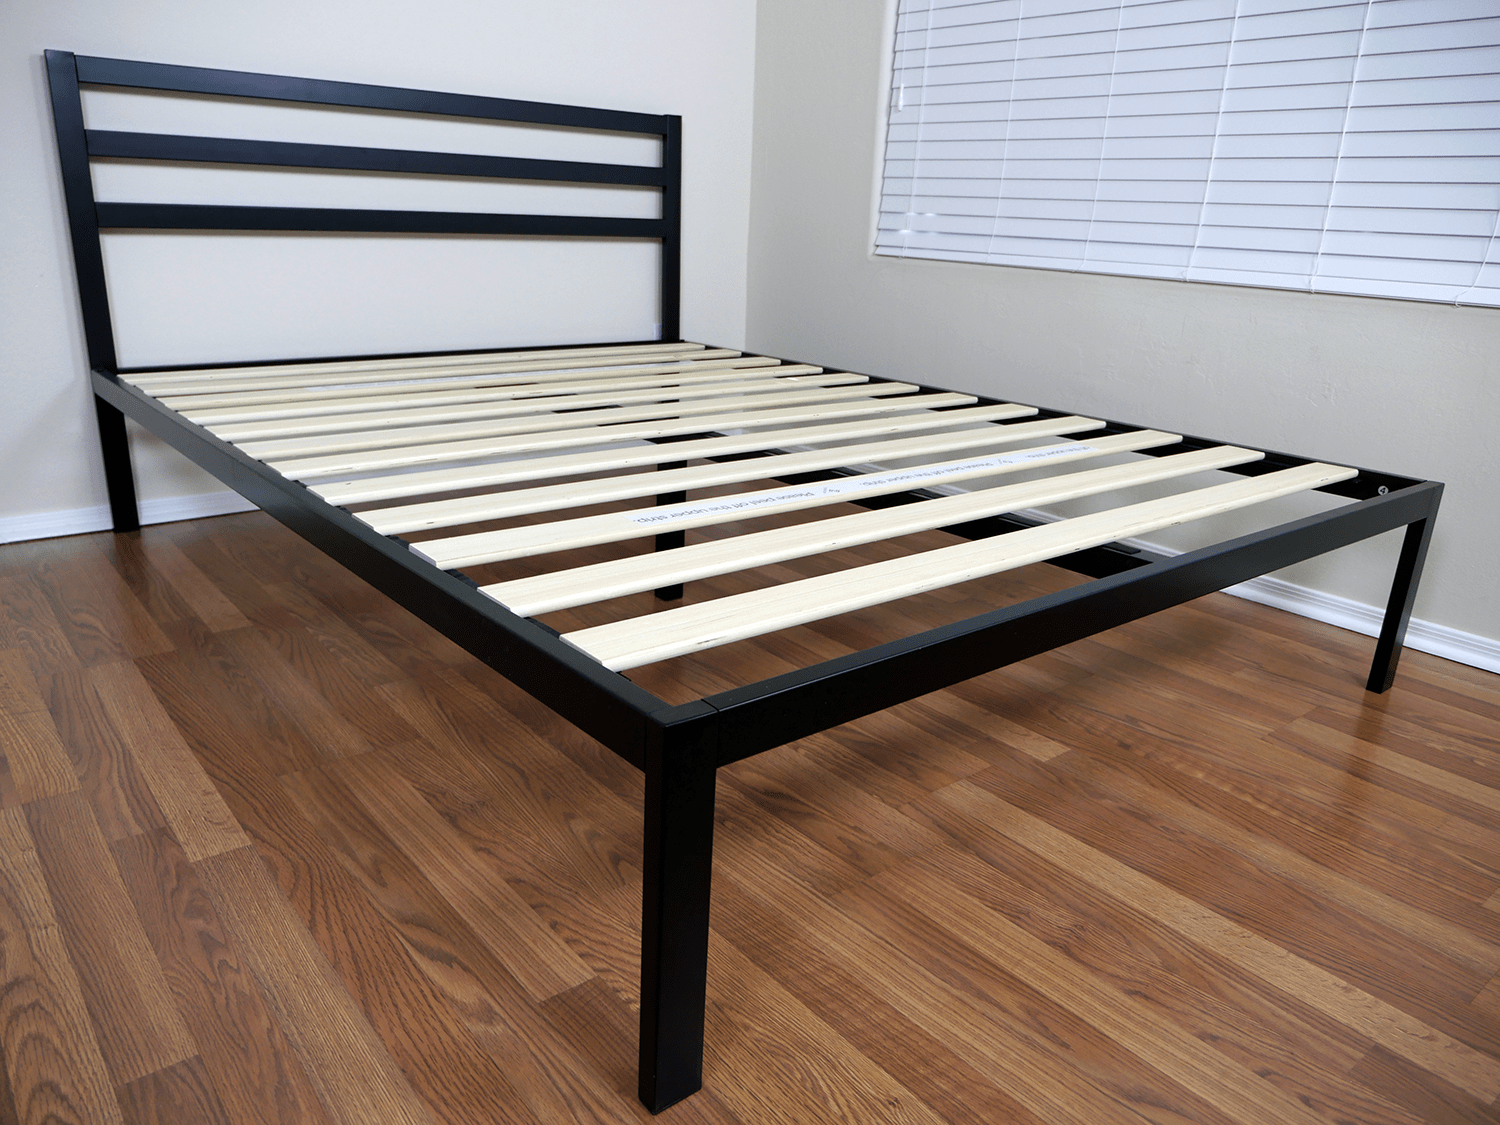 Angled view of the Zinus platform bed